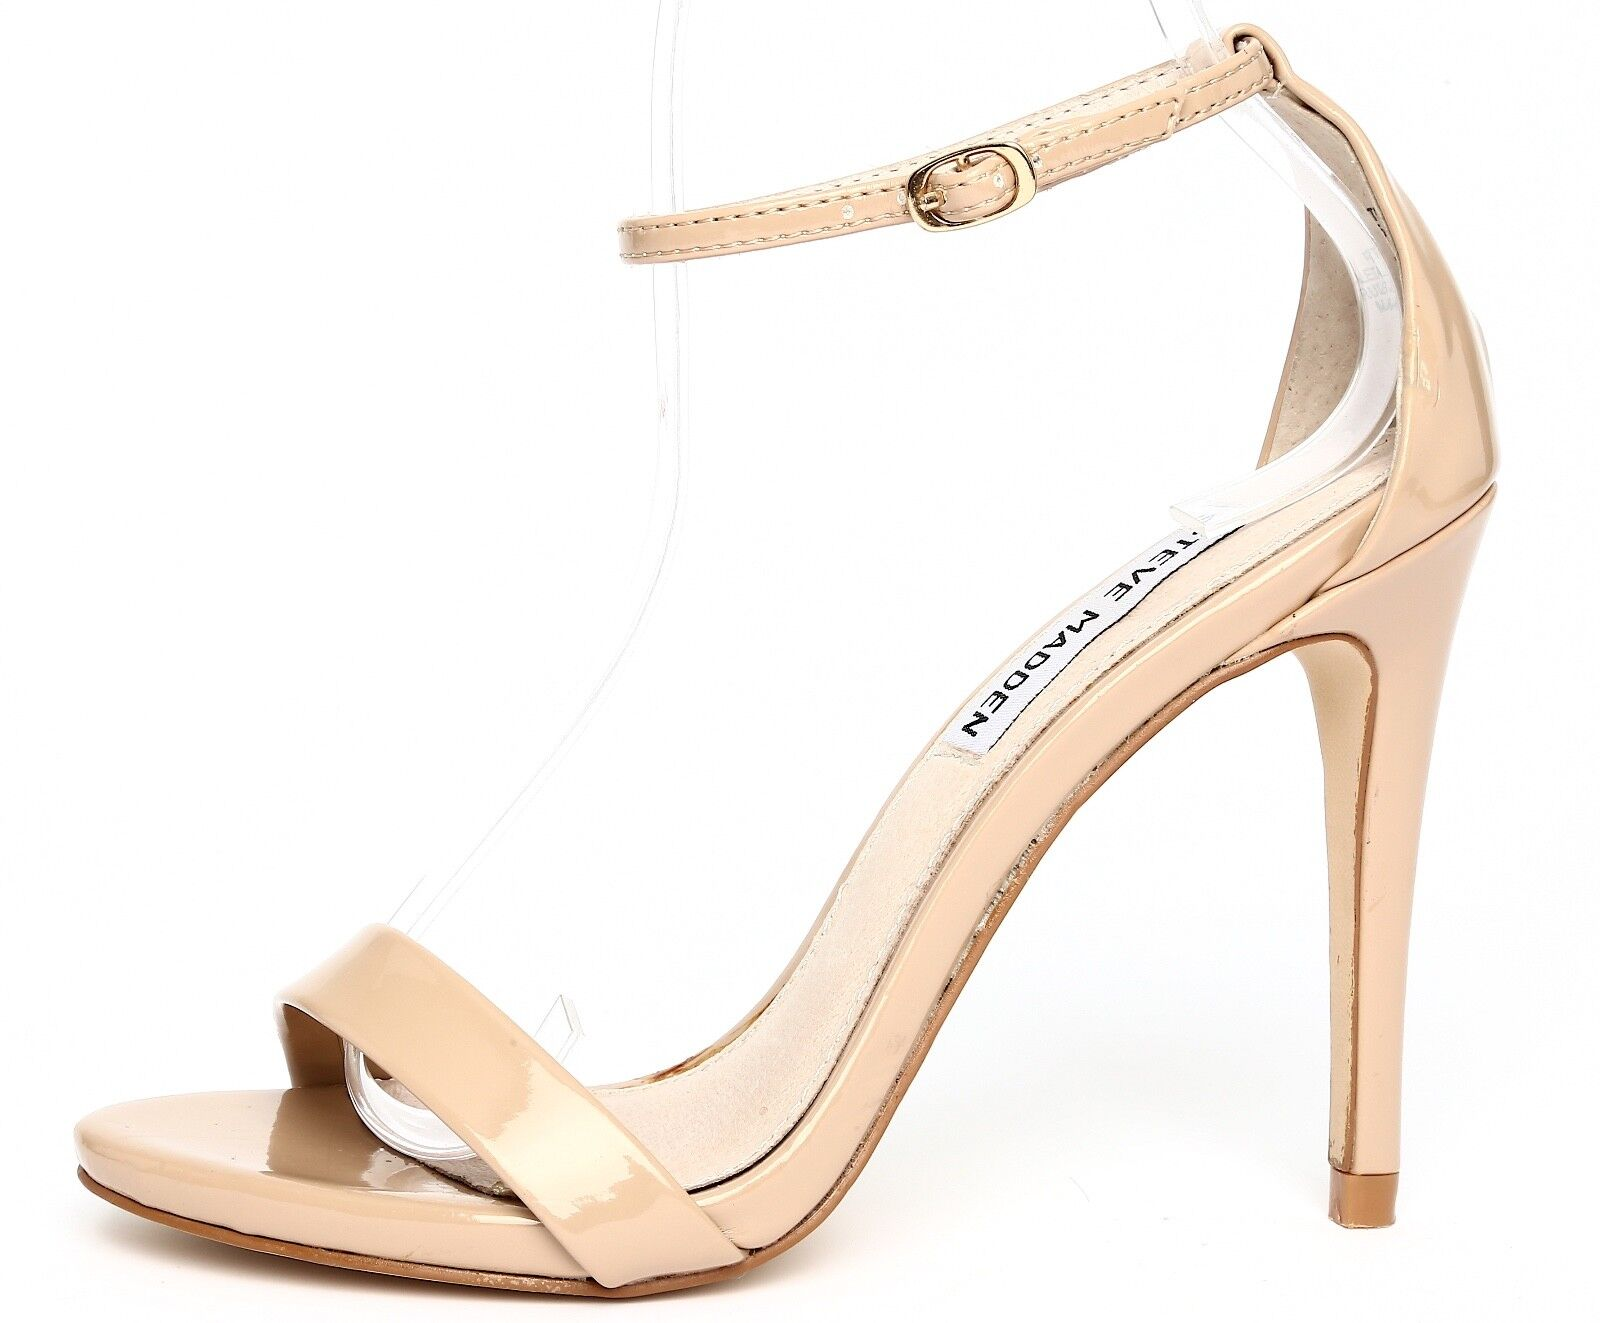 Steve Madden Stecy Patent Leather Nude Ankle Strap Sandal Heels Sz 5.5M 2619